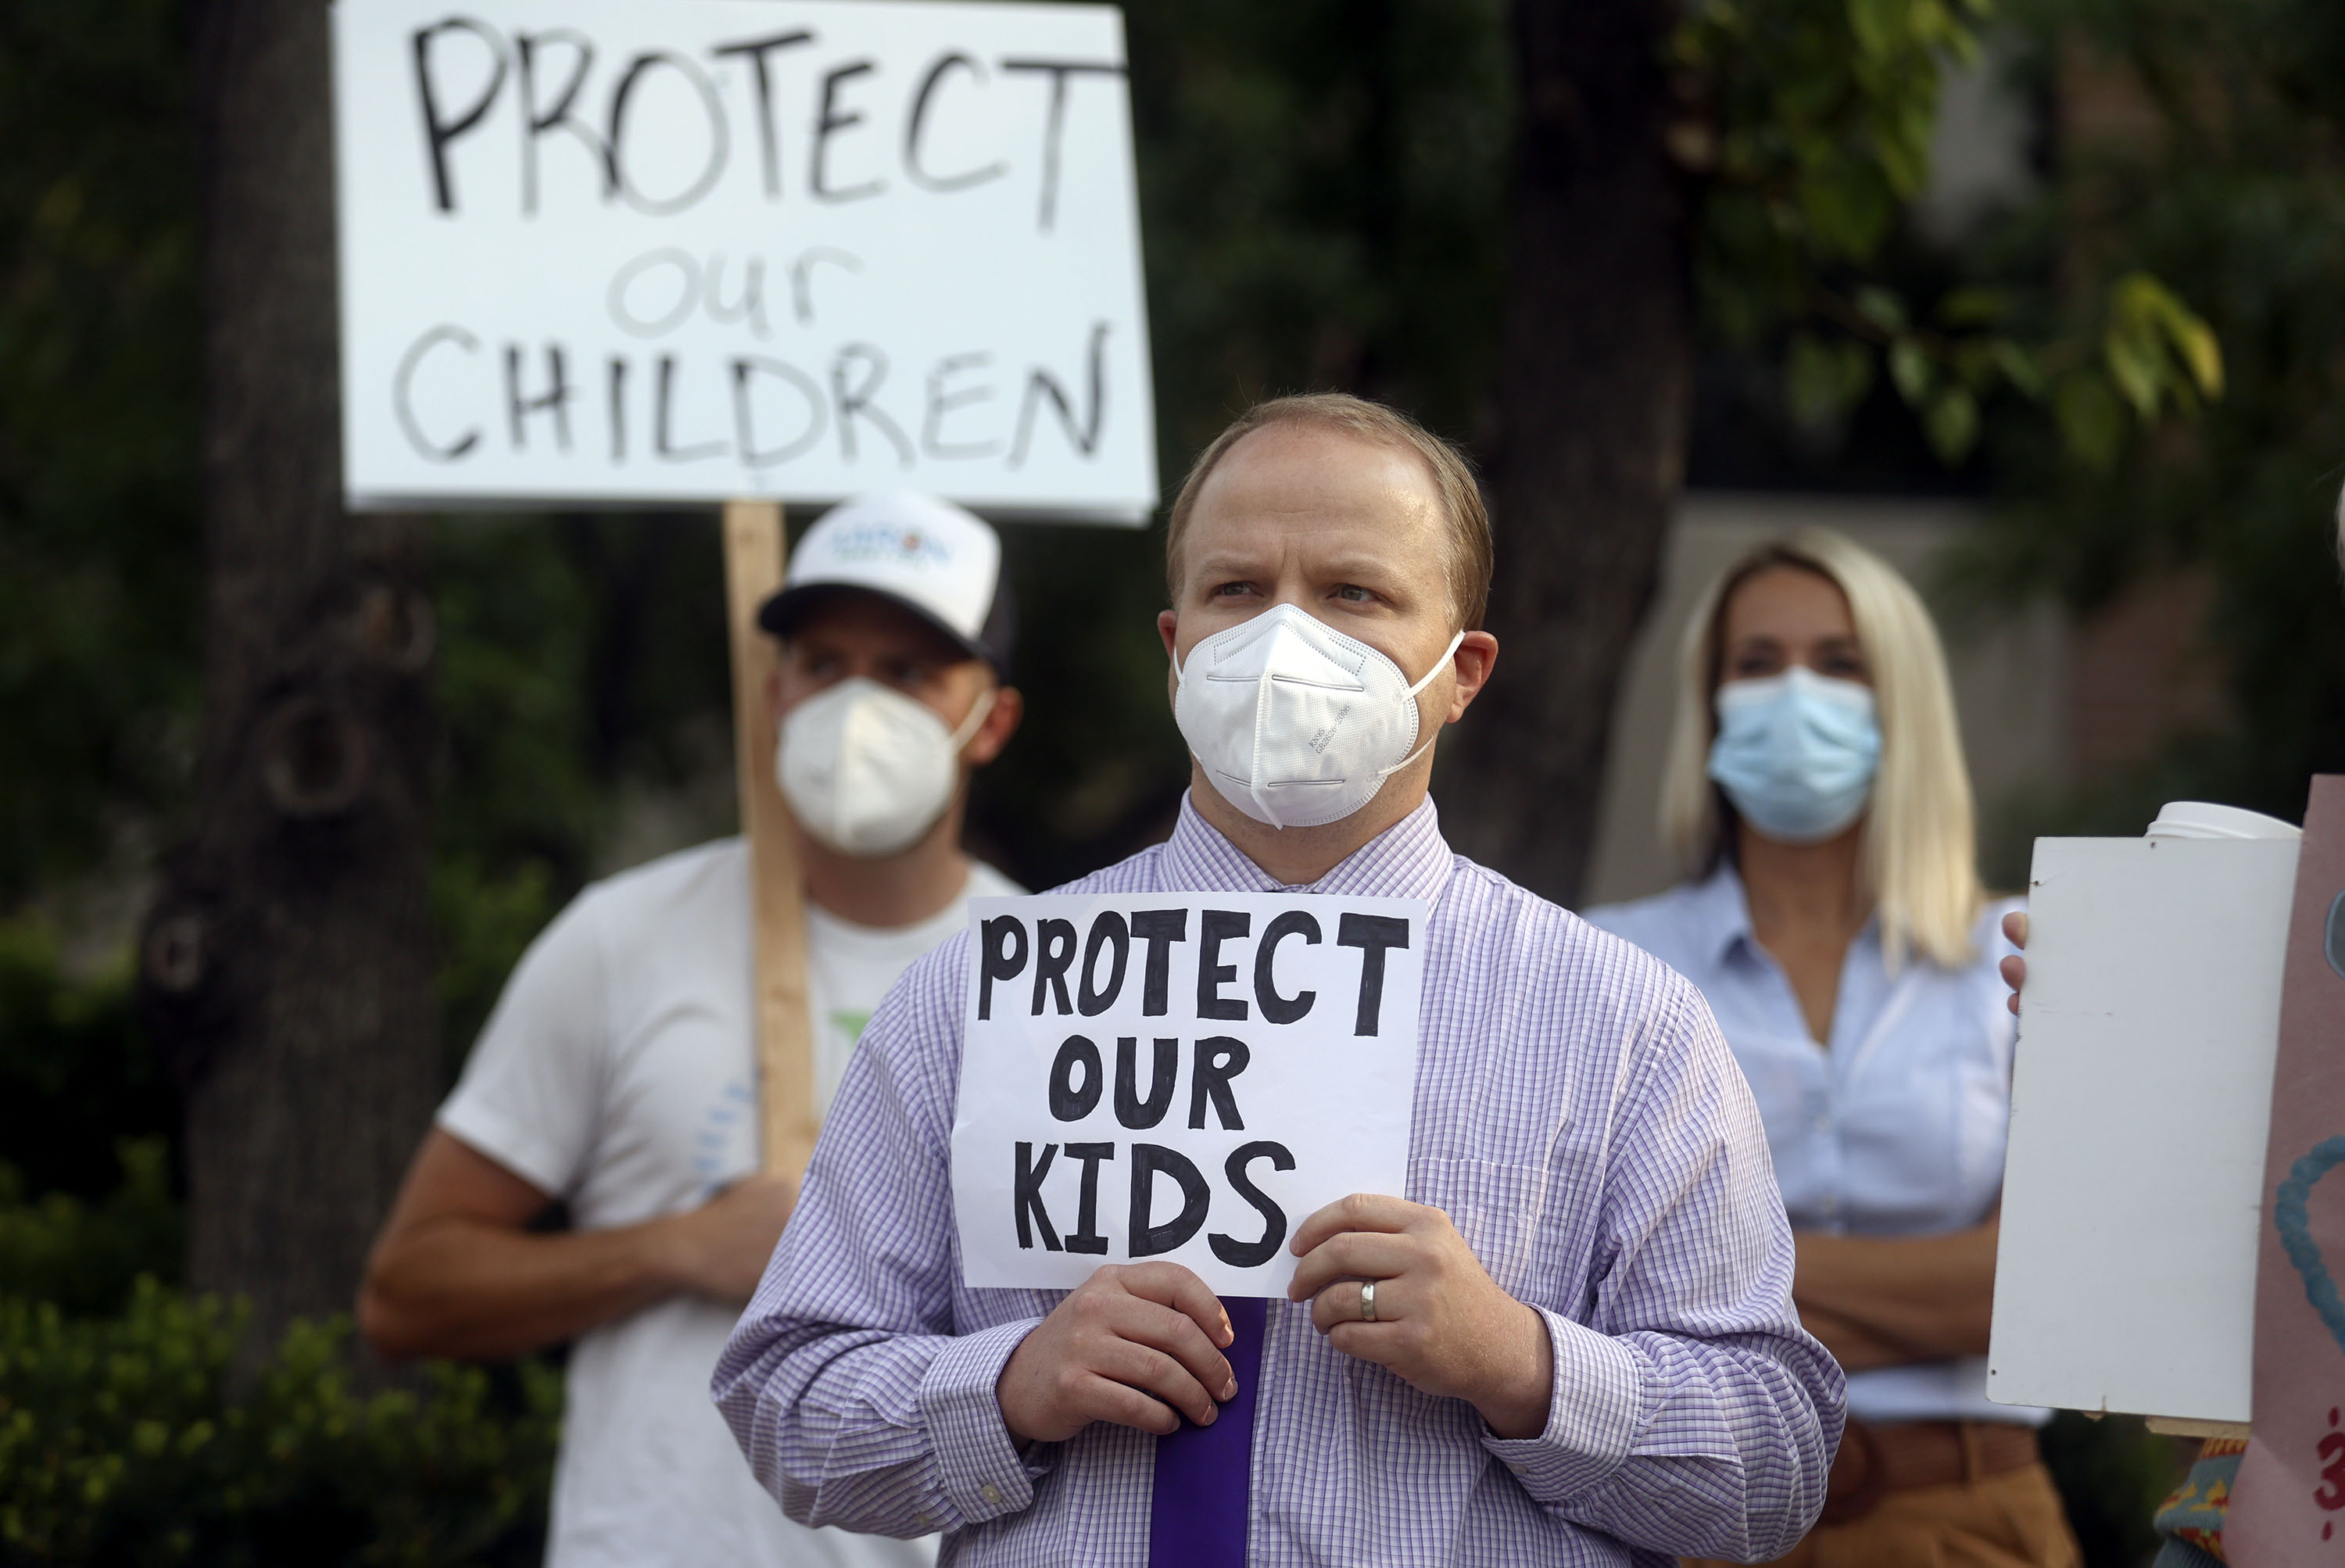 A man holds a sign supporting school mask mandates.